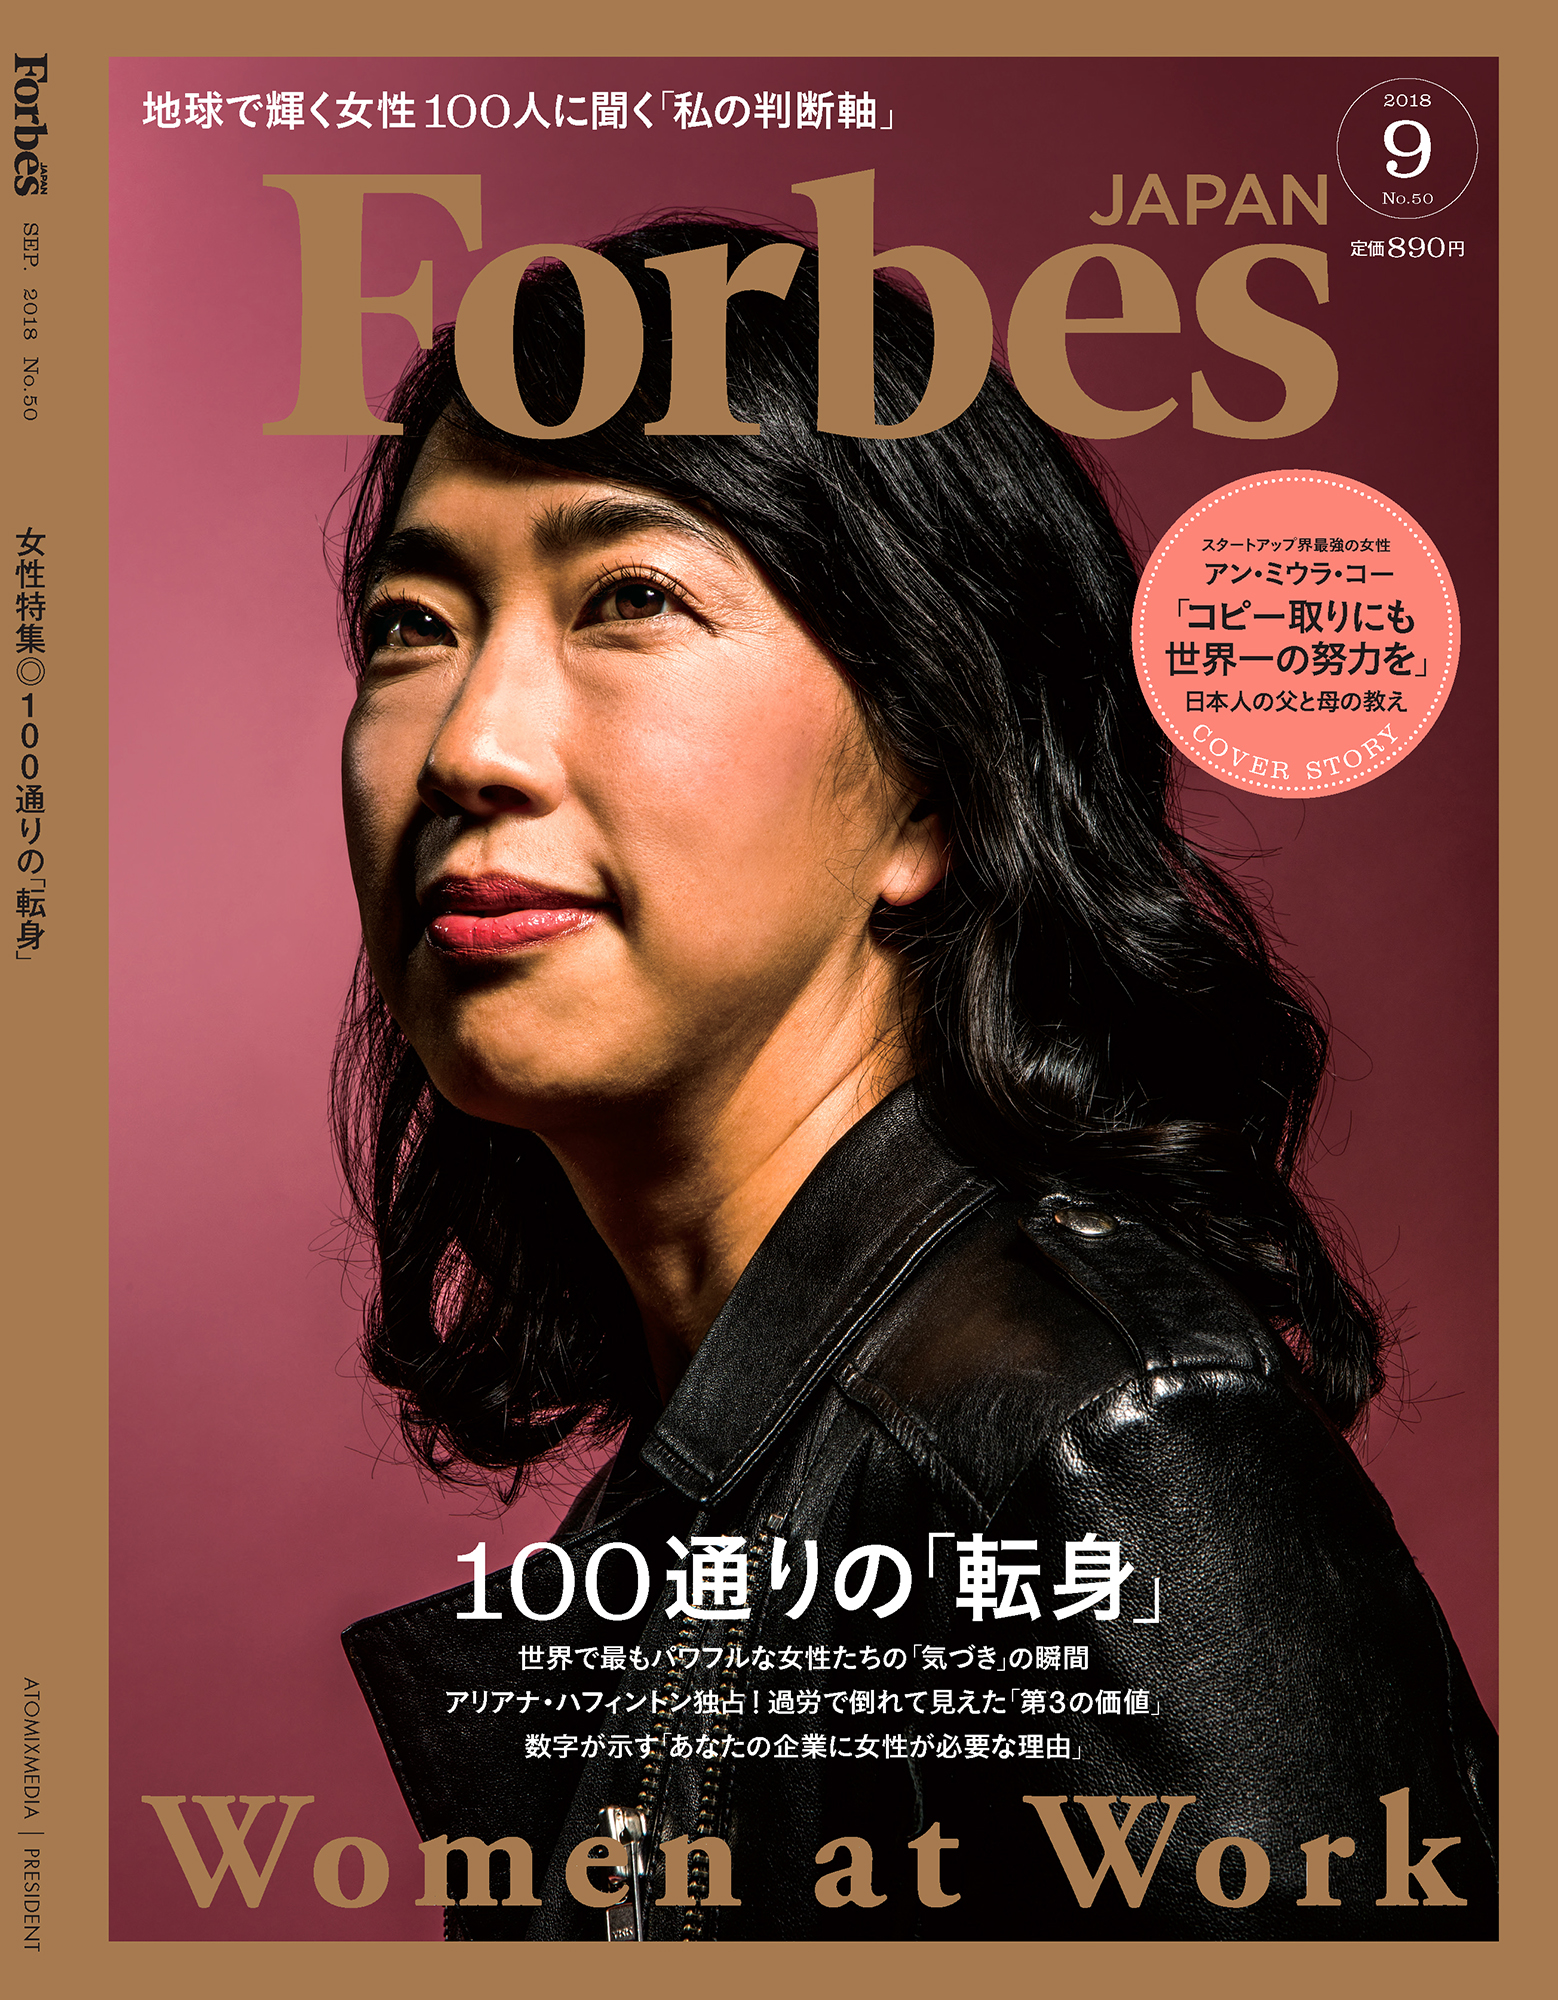 Ann Miura for Forbes Japan.